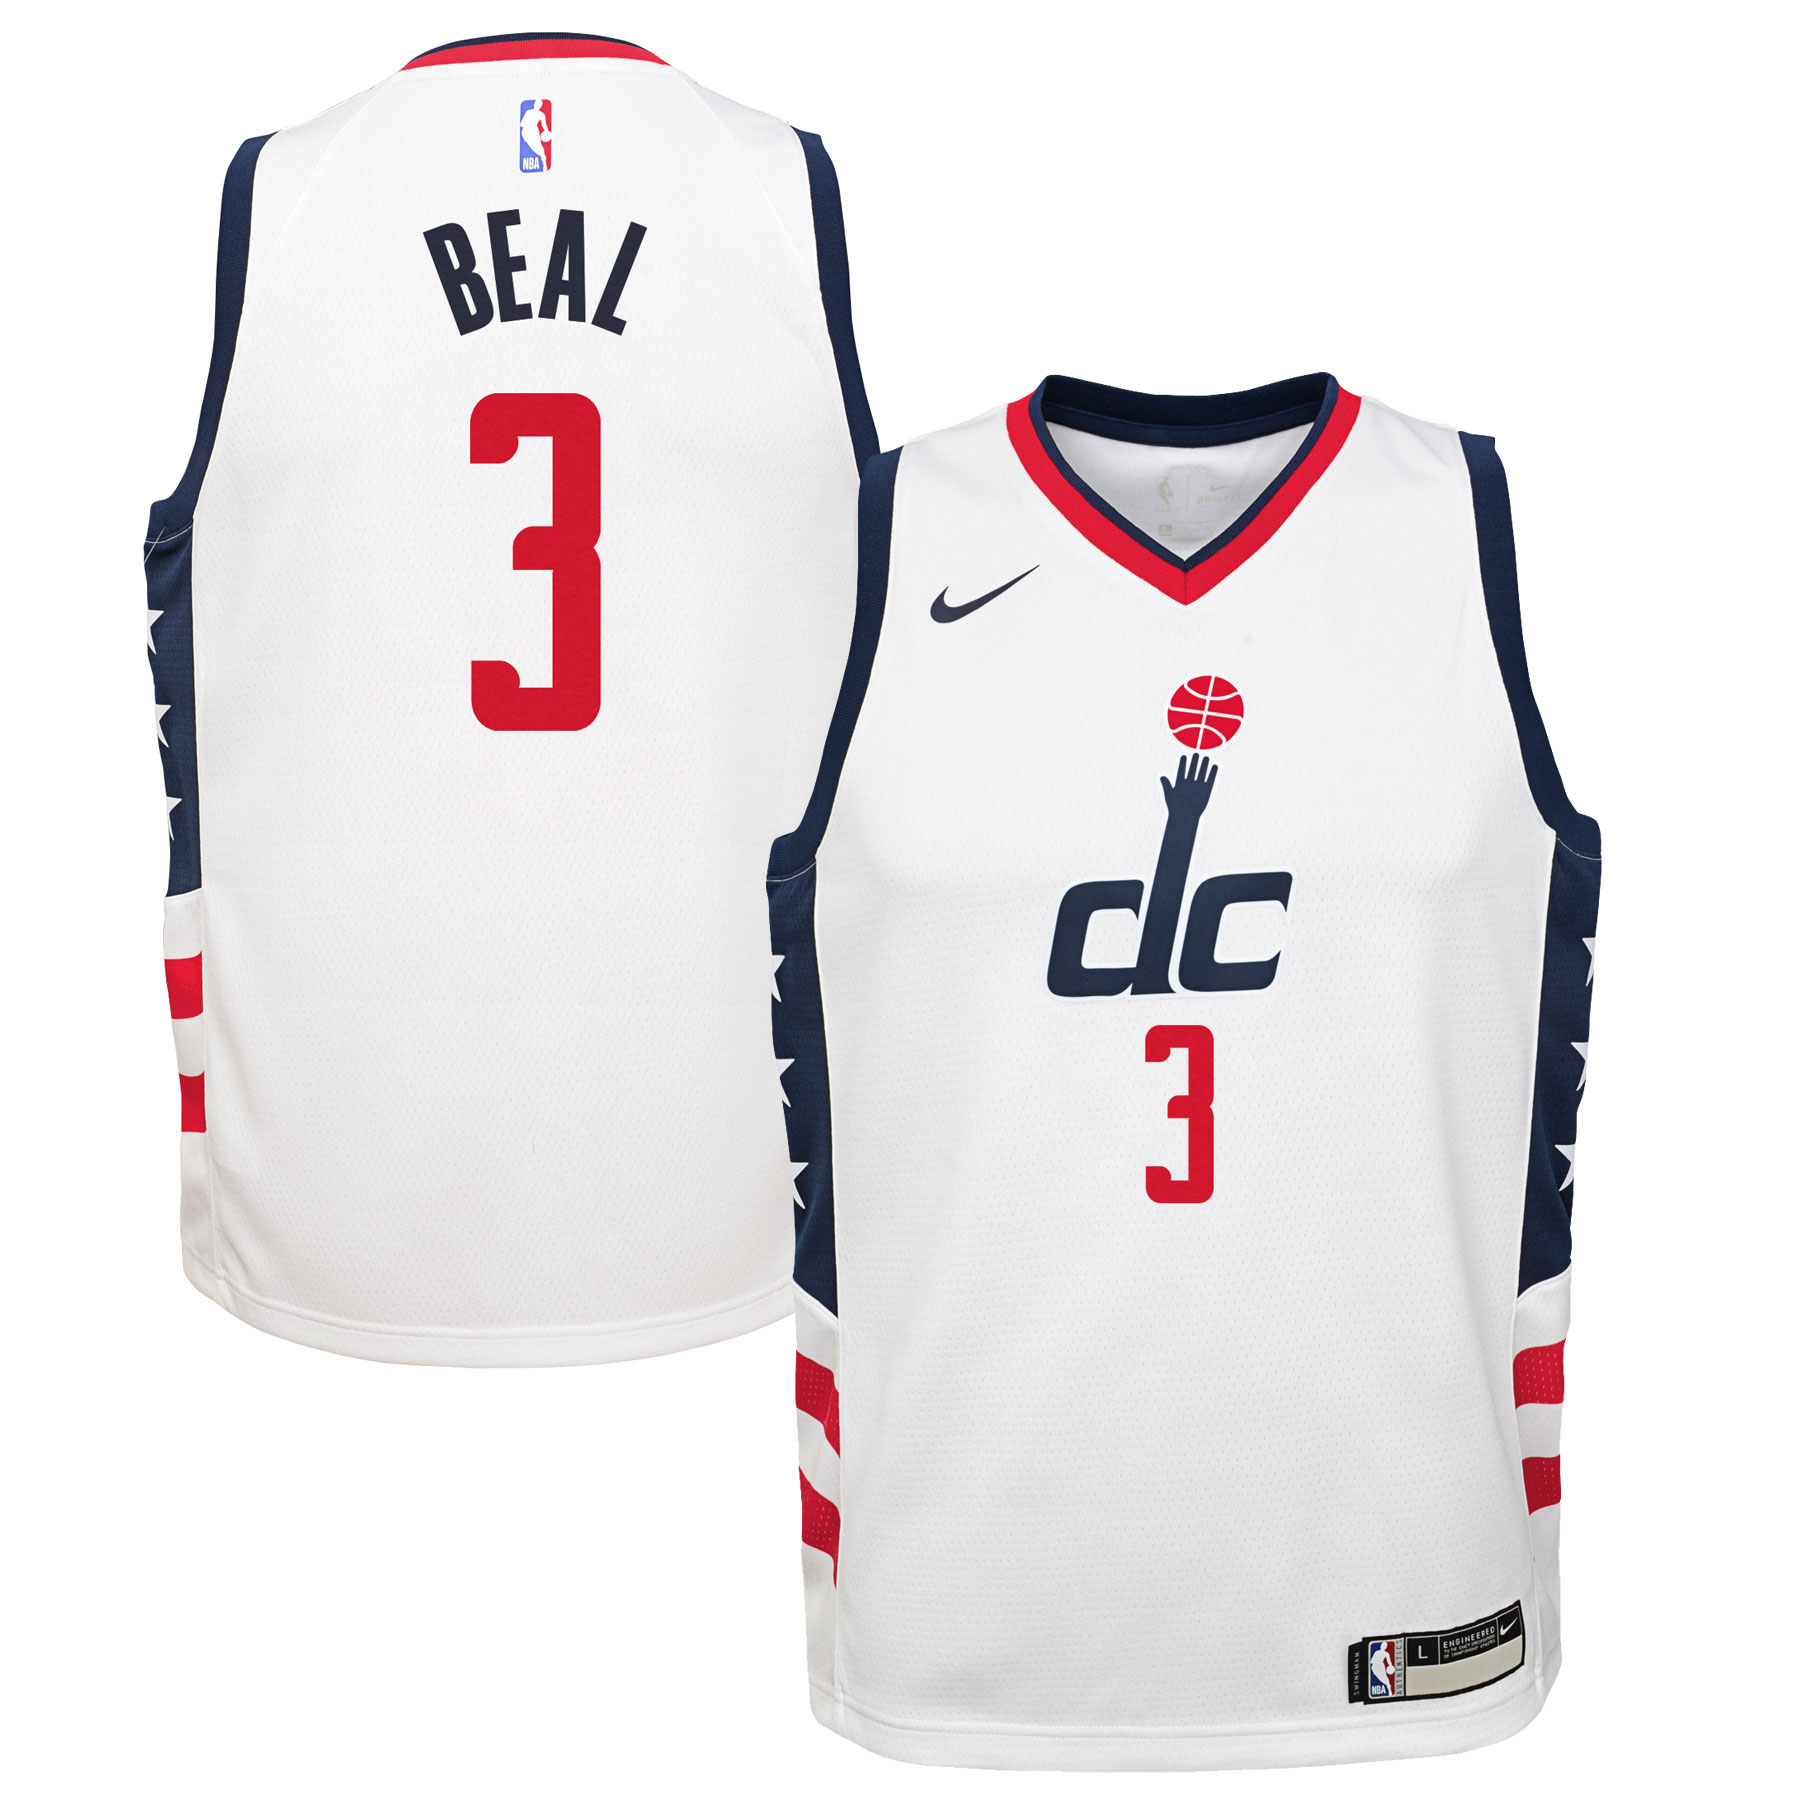 Bradley Beal Washington Wizards Nike Youth Swingman Jersey White - City Edition